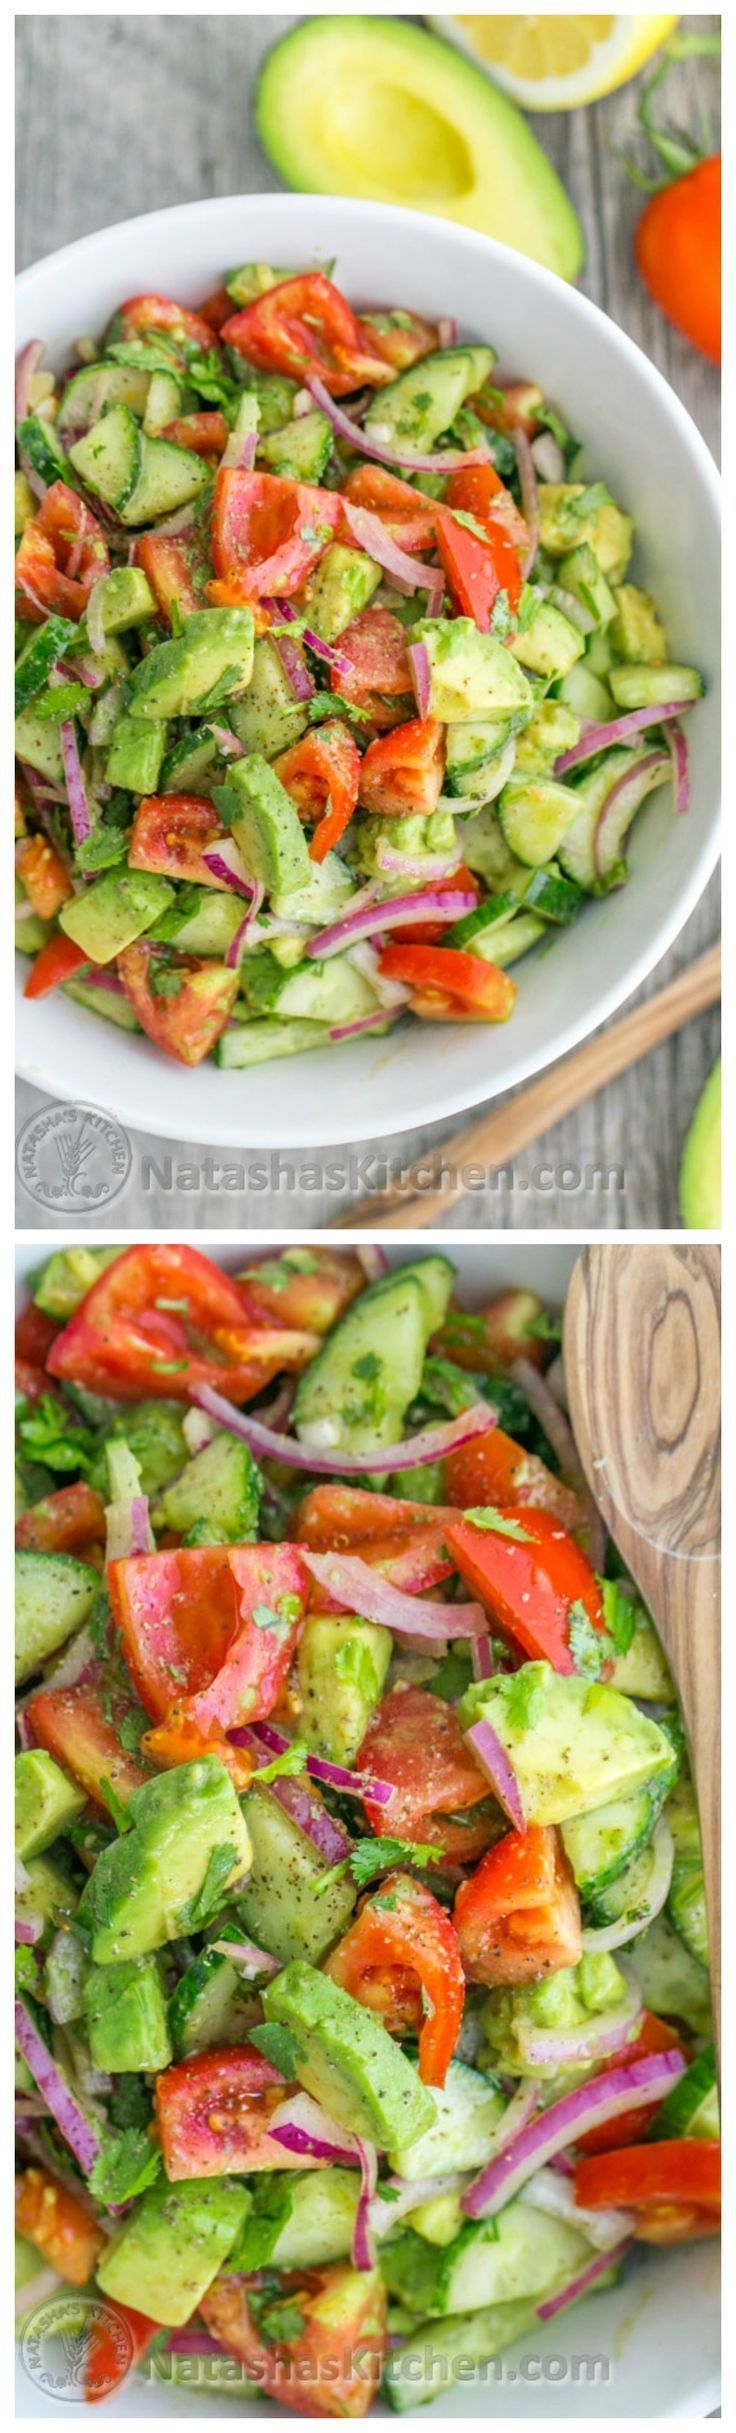 "This #YUMMY ""Cucumber Tomato Avocado Salad"" Recipe is a KEEPER!!! Easy, Excellent Salad 